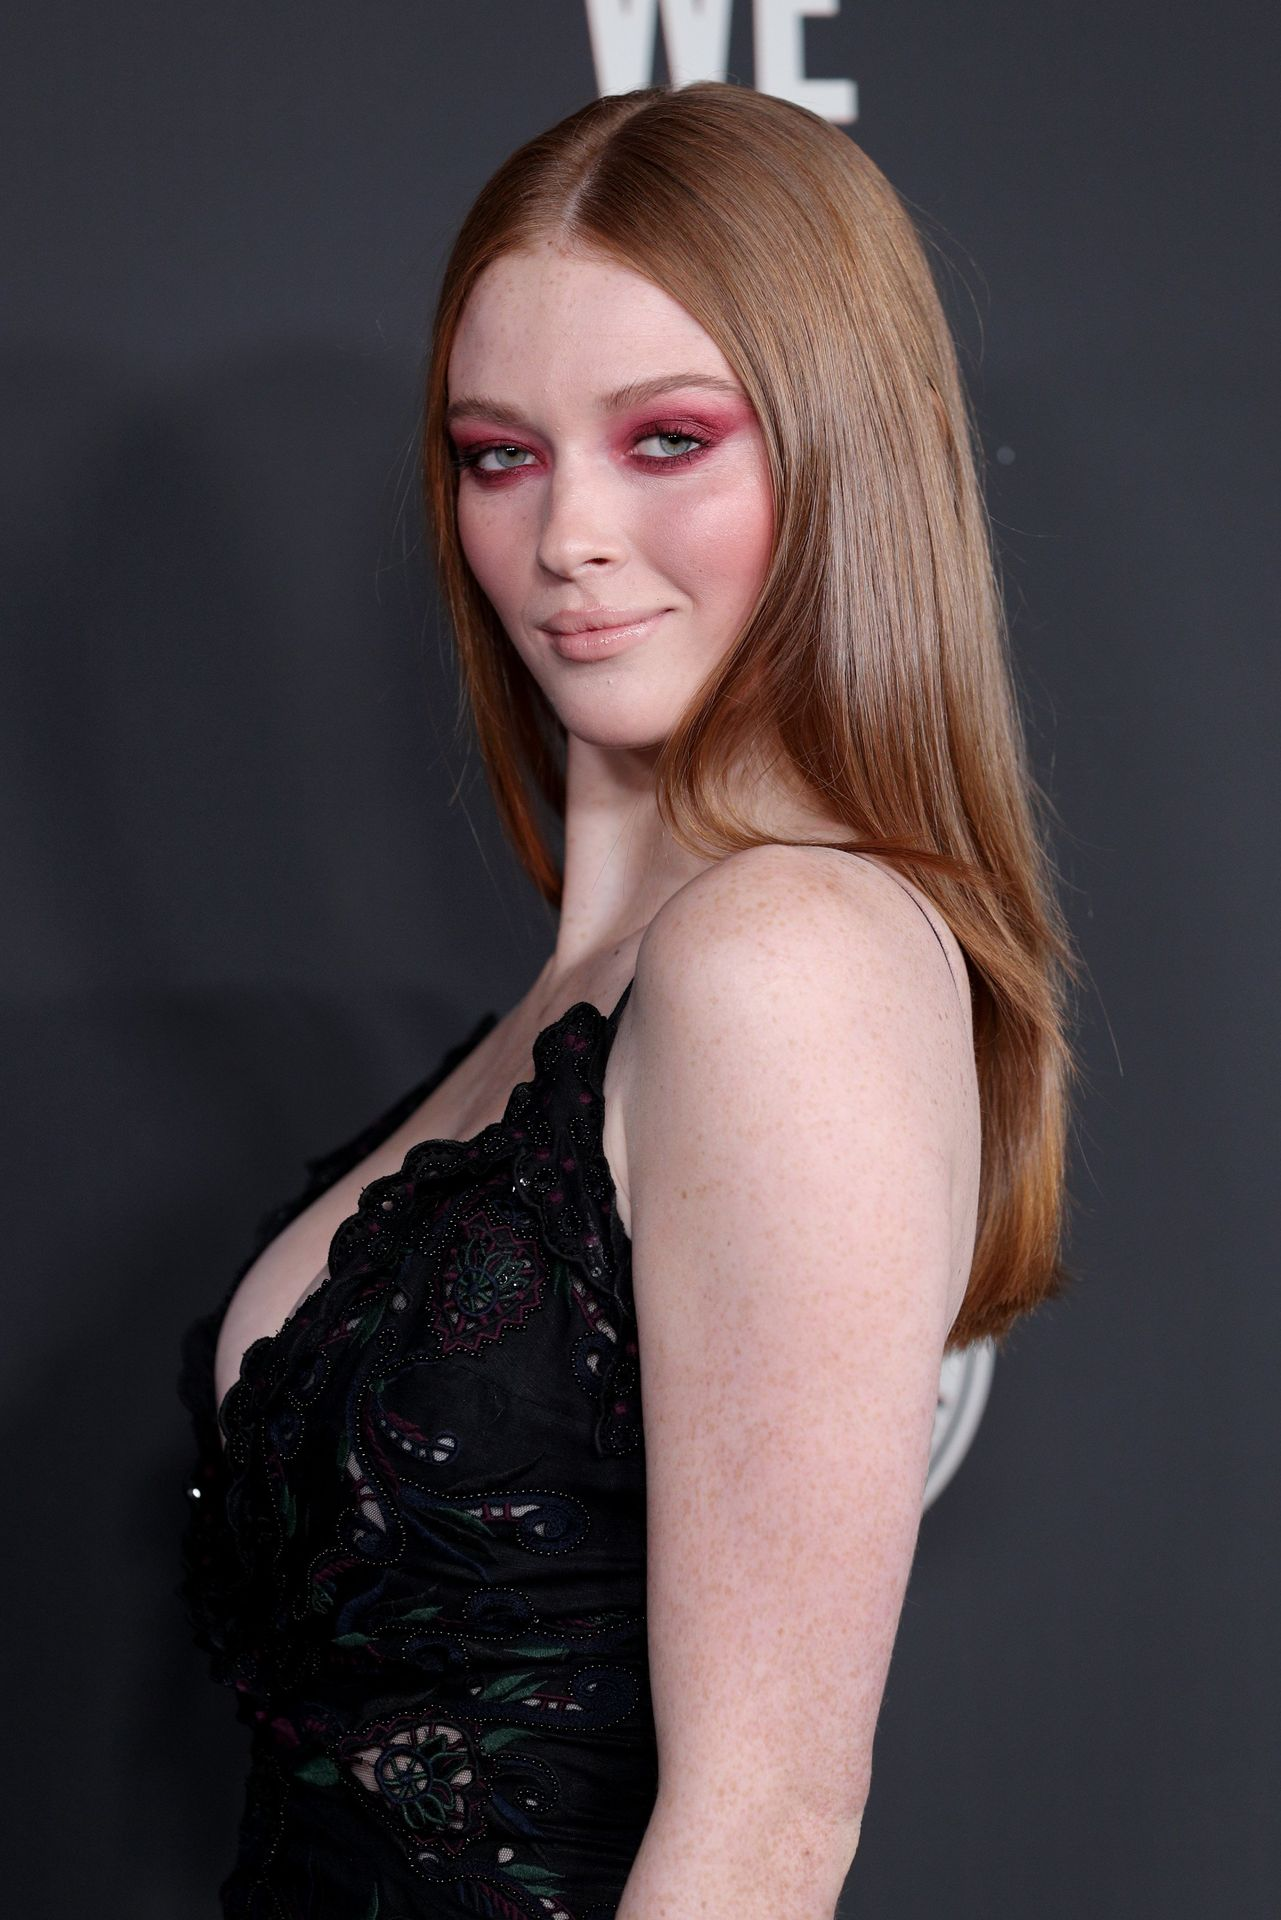 Larsen Thompson's Cleavage At The Art Of Elysium's 13th Annual Black Tie Artistic Experience Heaven 0007